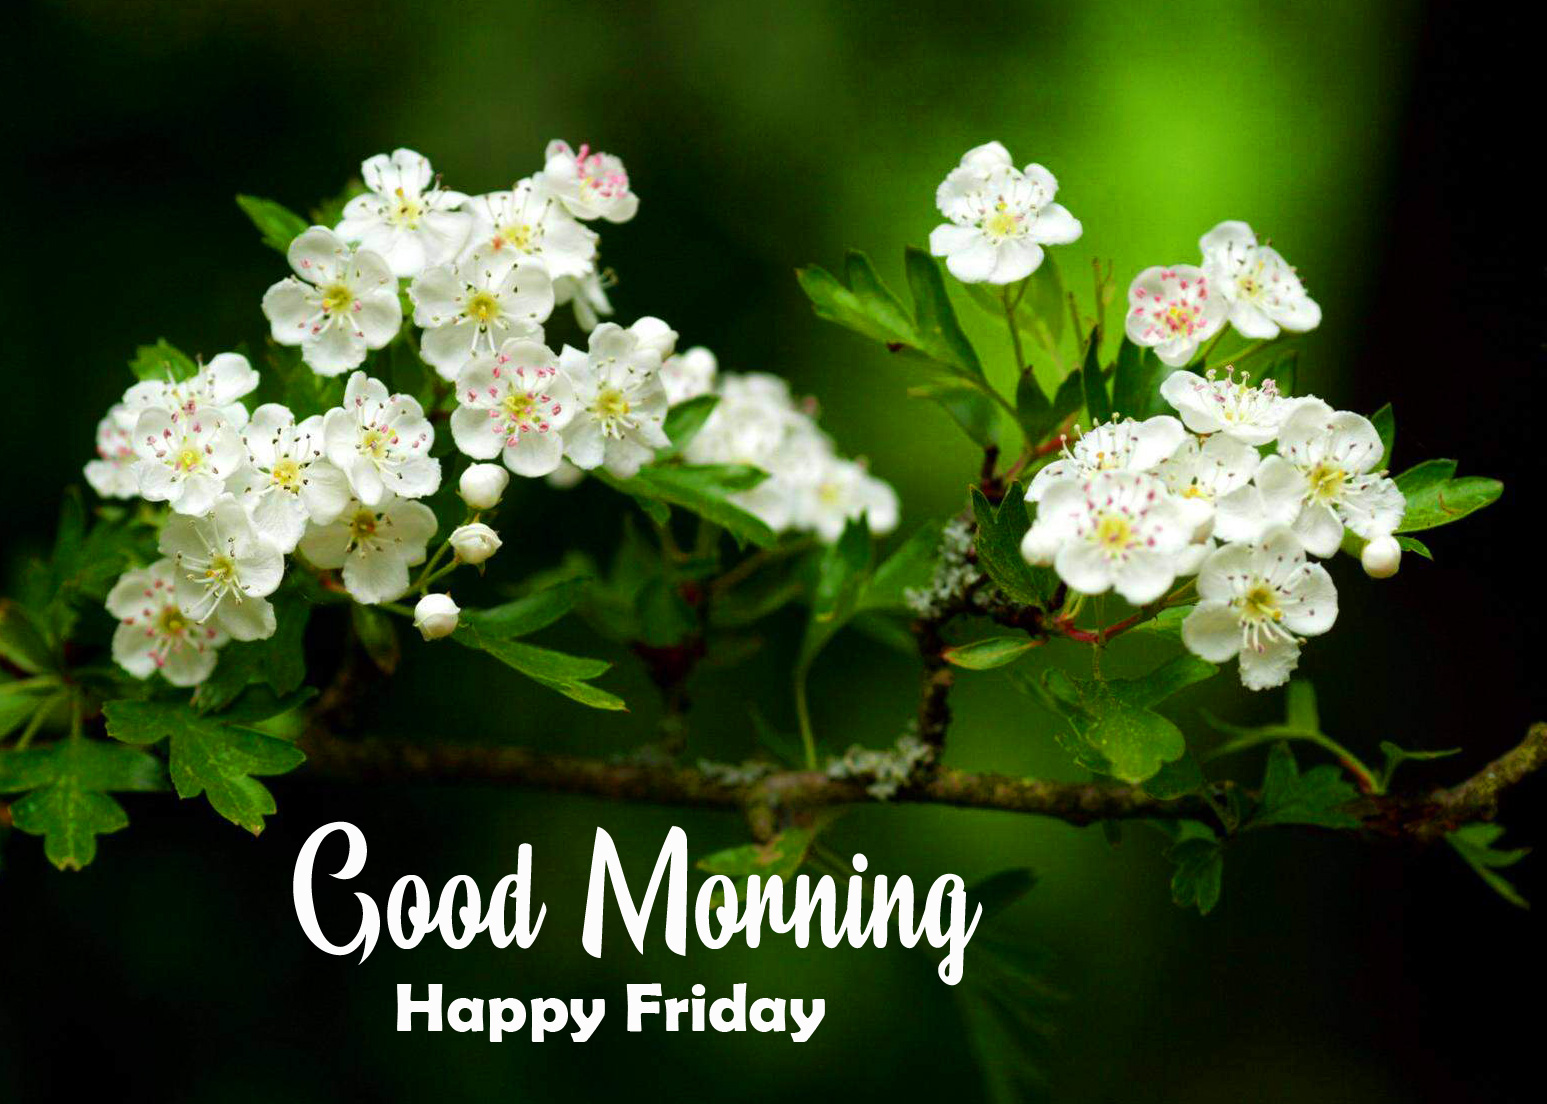 White Cute Flowers Good Morning Happy Friday Image